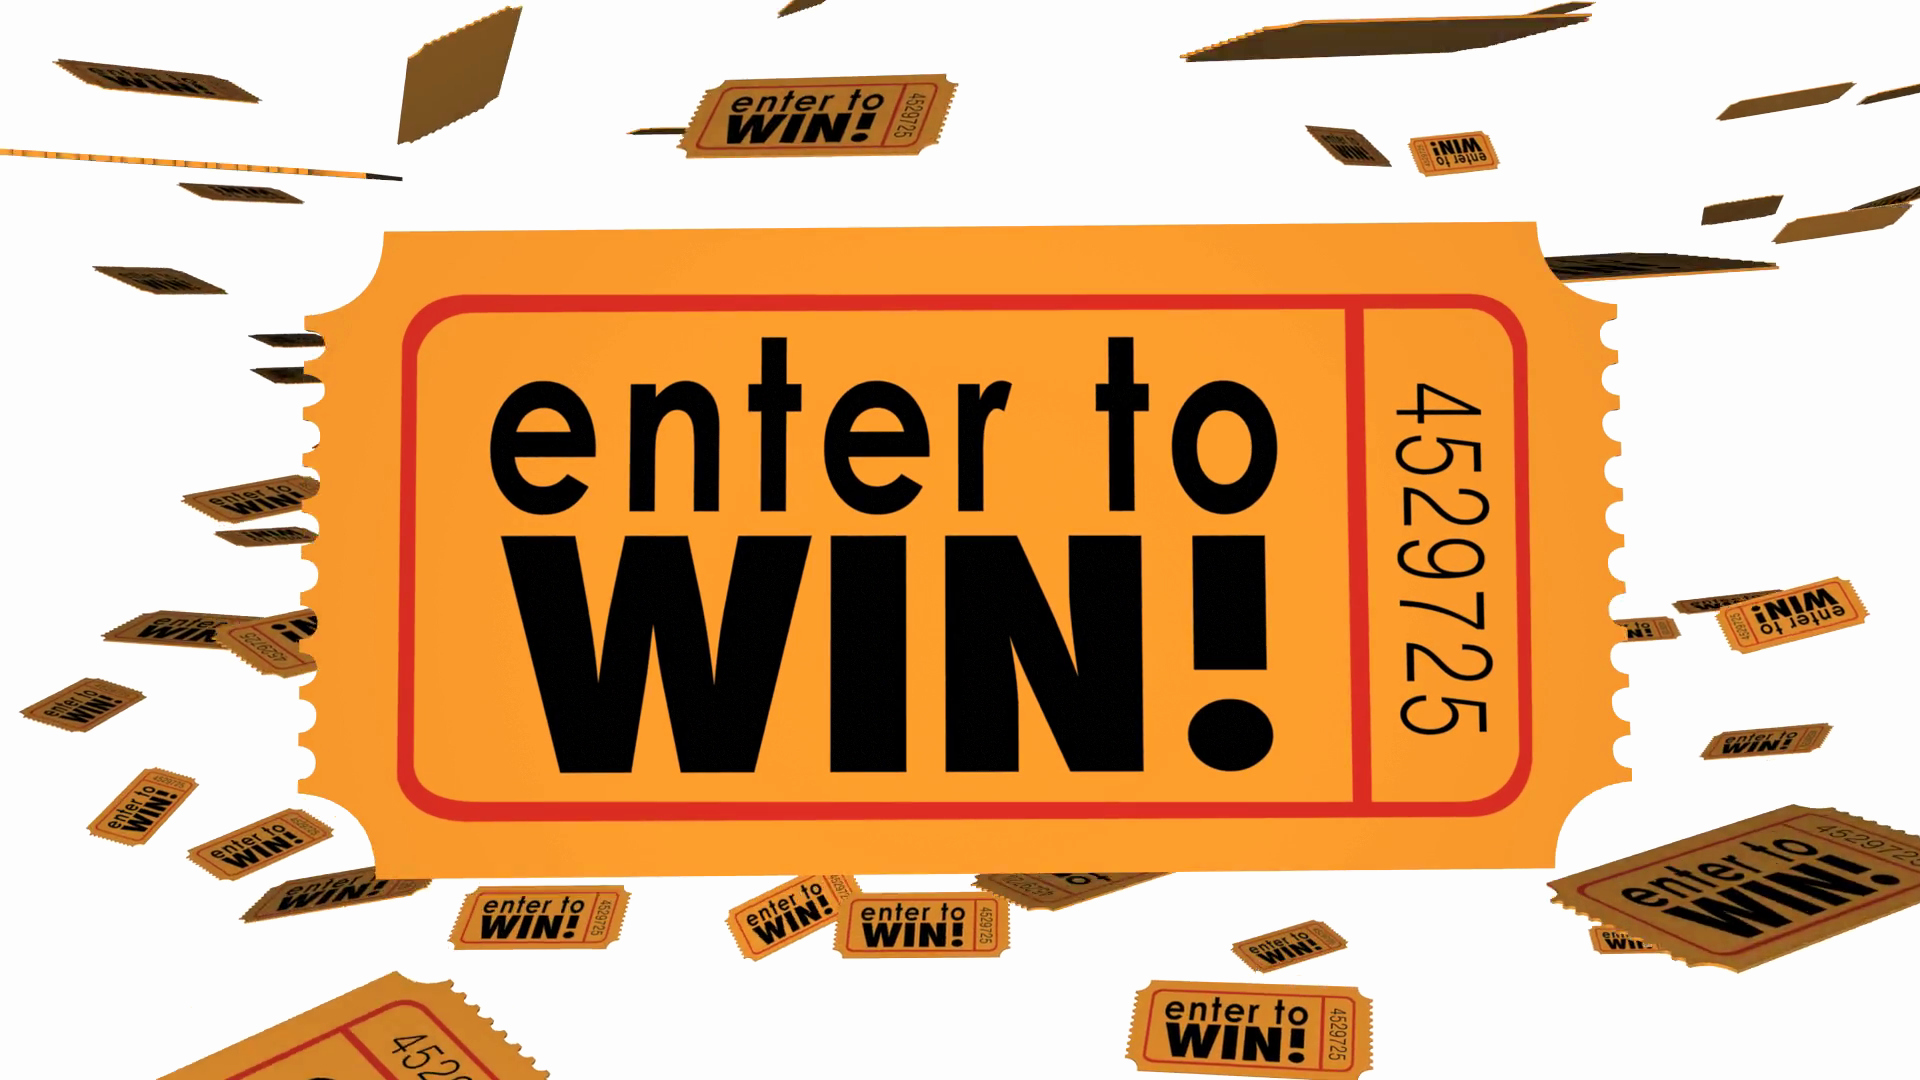 Enter to Win Raffle Template Unique Enter to Win Contest Raffle Lottery Ticket Words Lucky 3 D